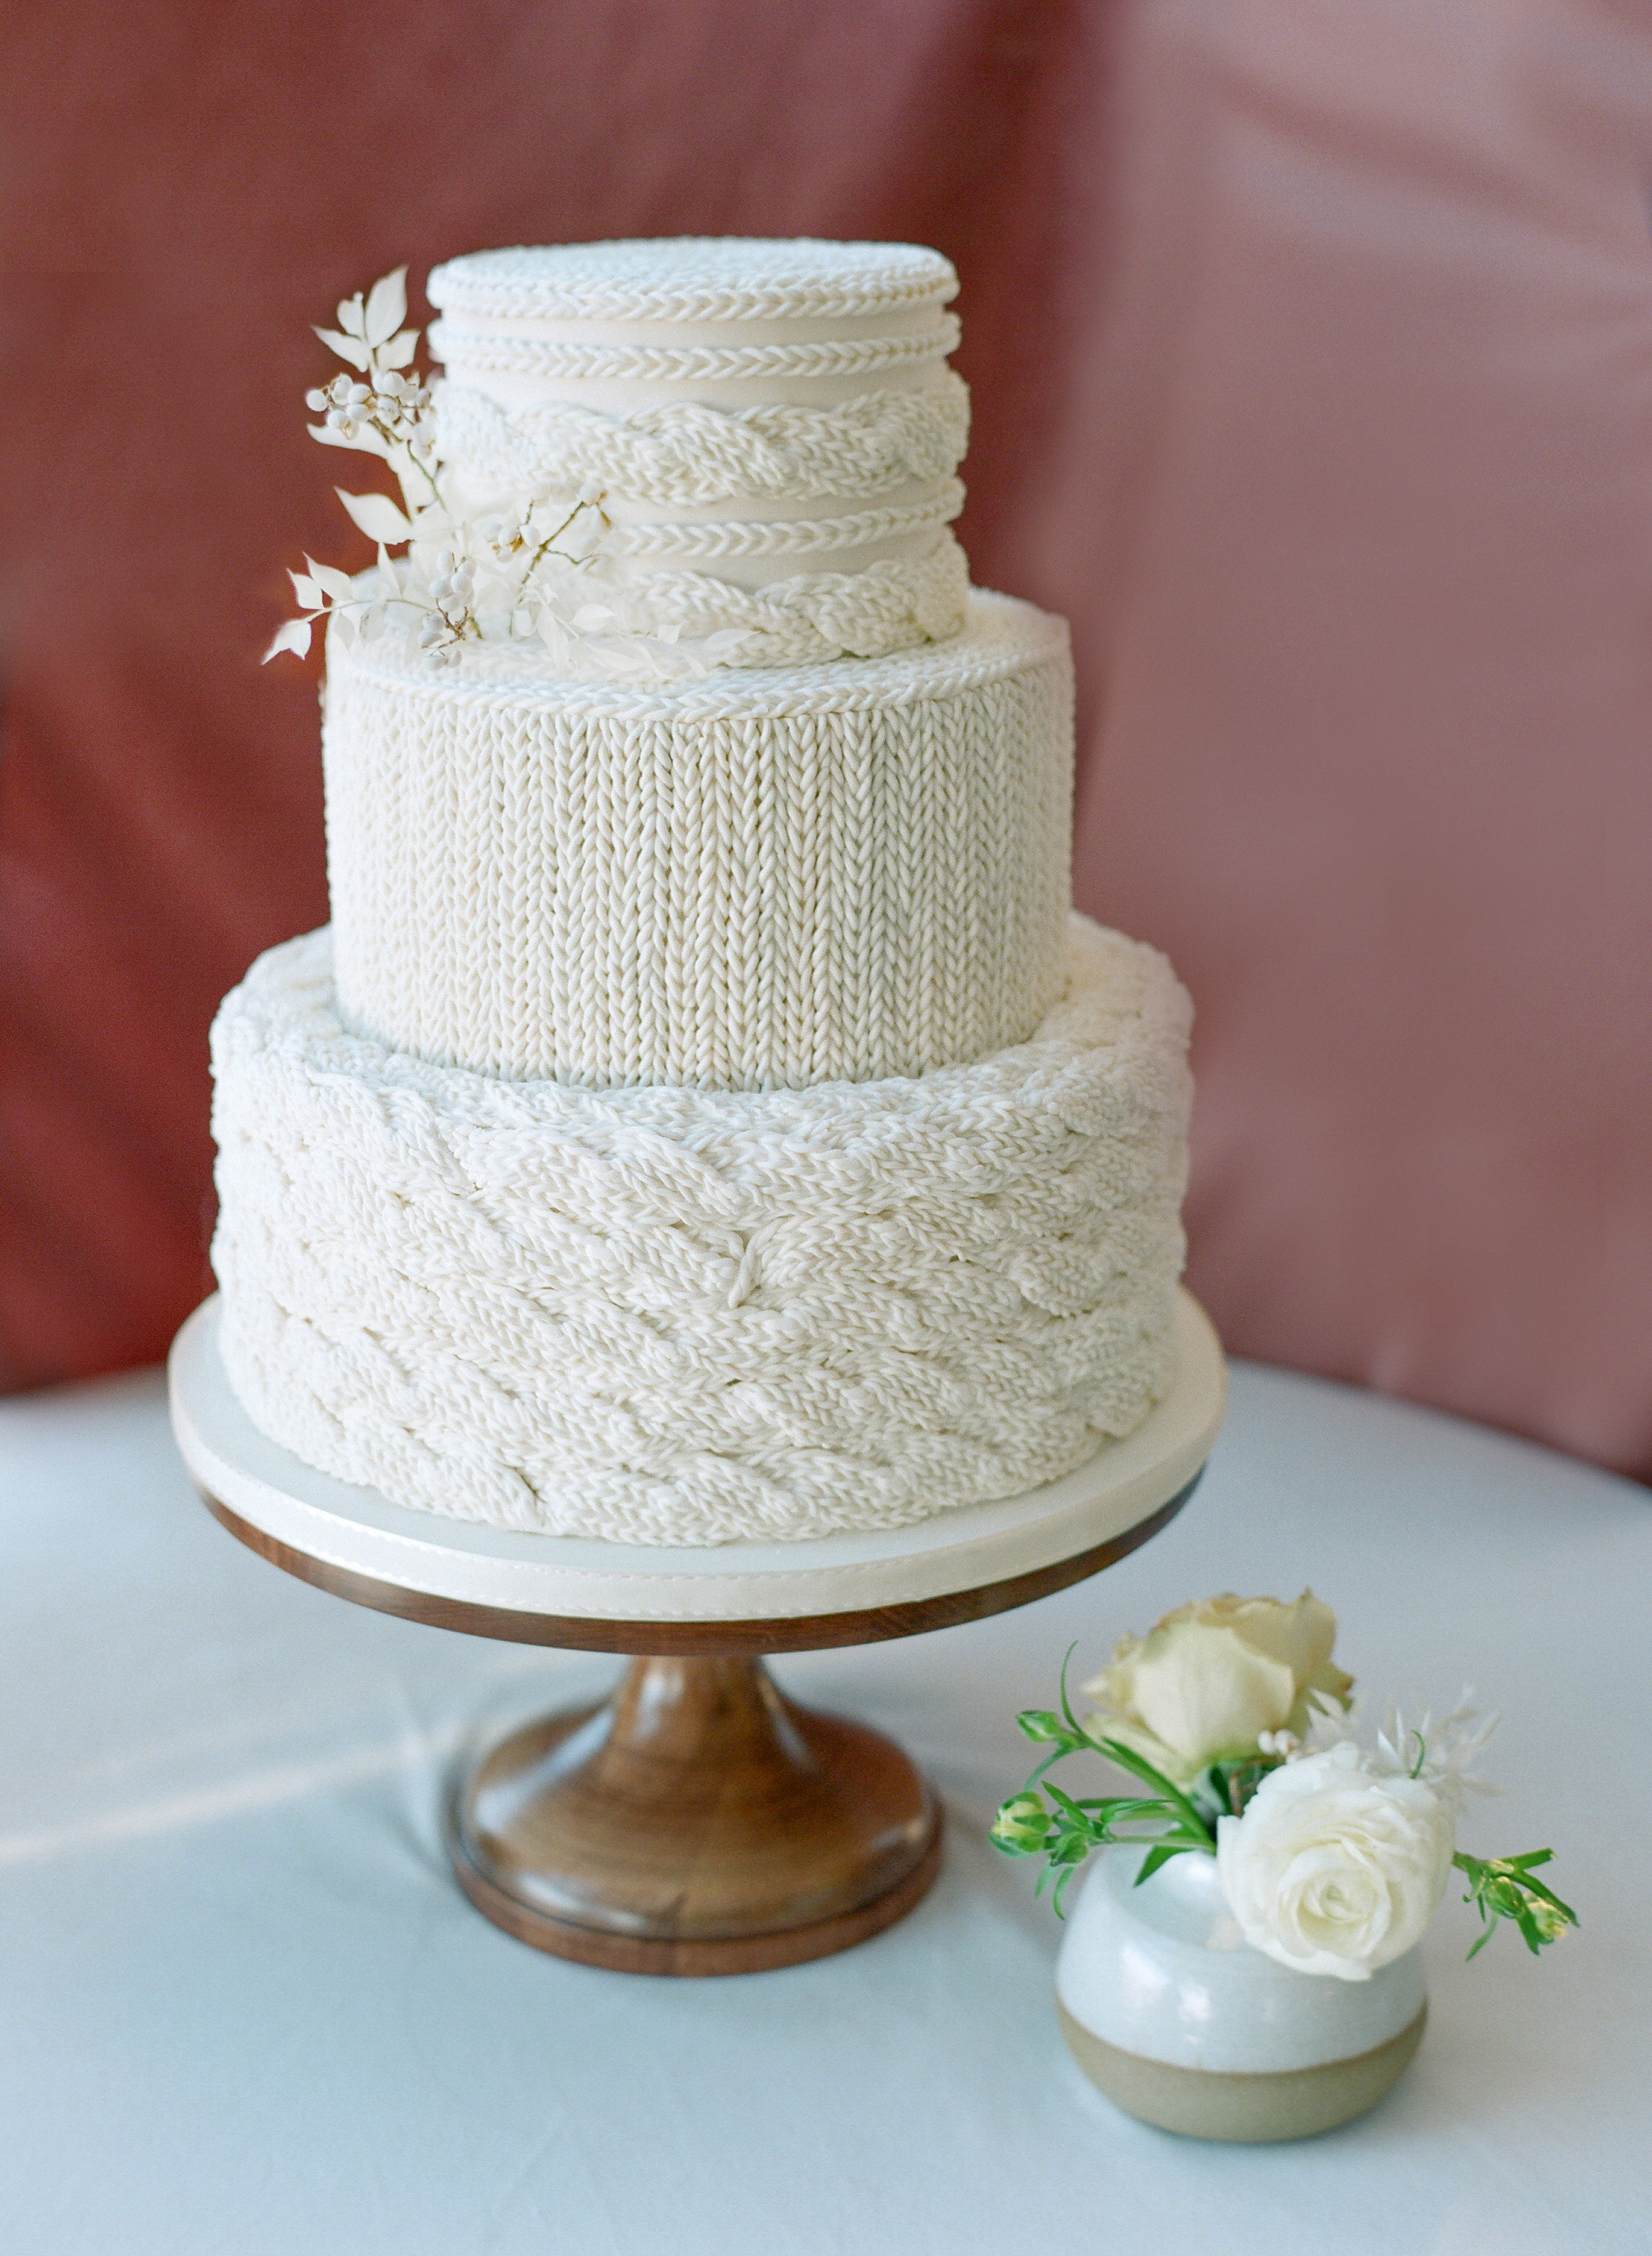 Cozy Knitted Cake